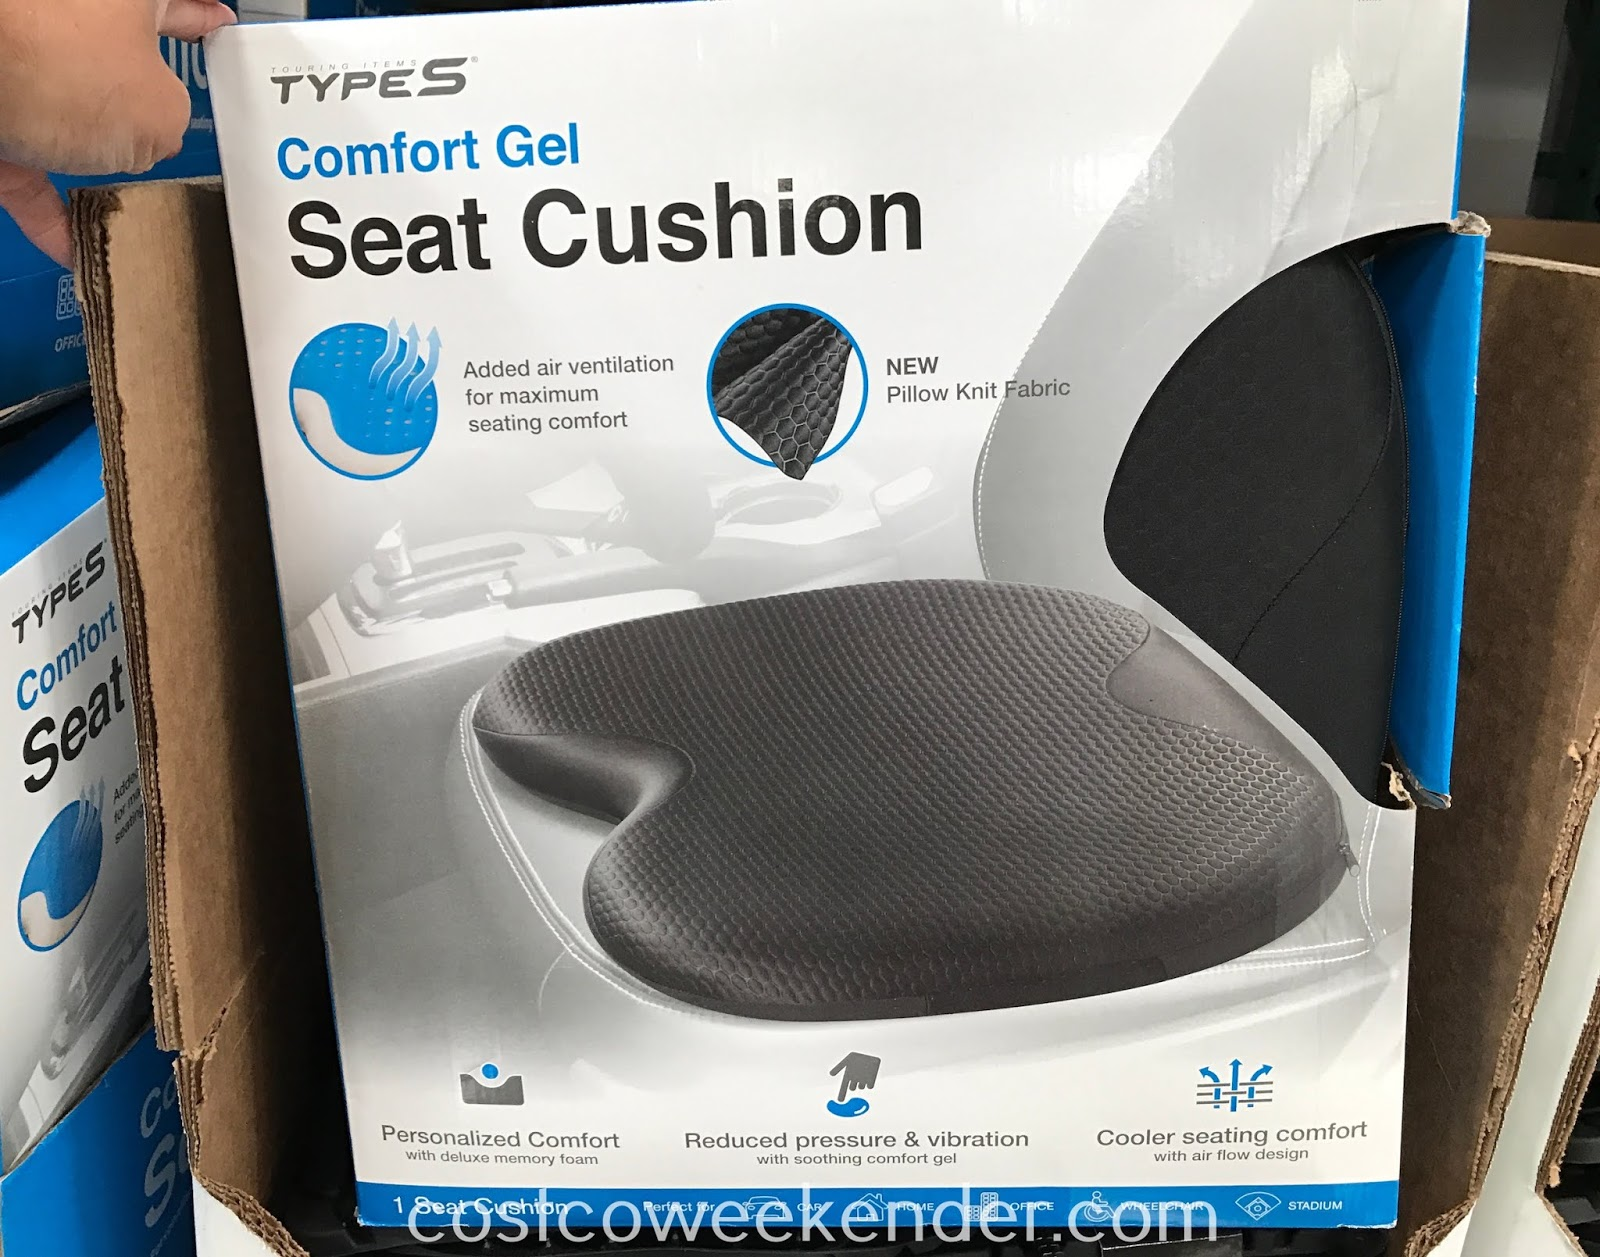 Type S Comfort Gel Seat Cushion Costco Weekender